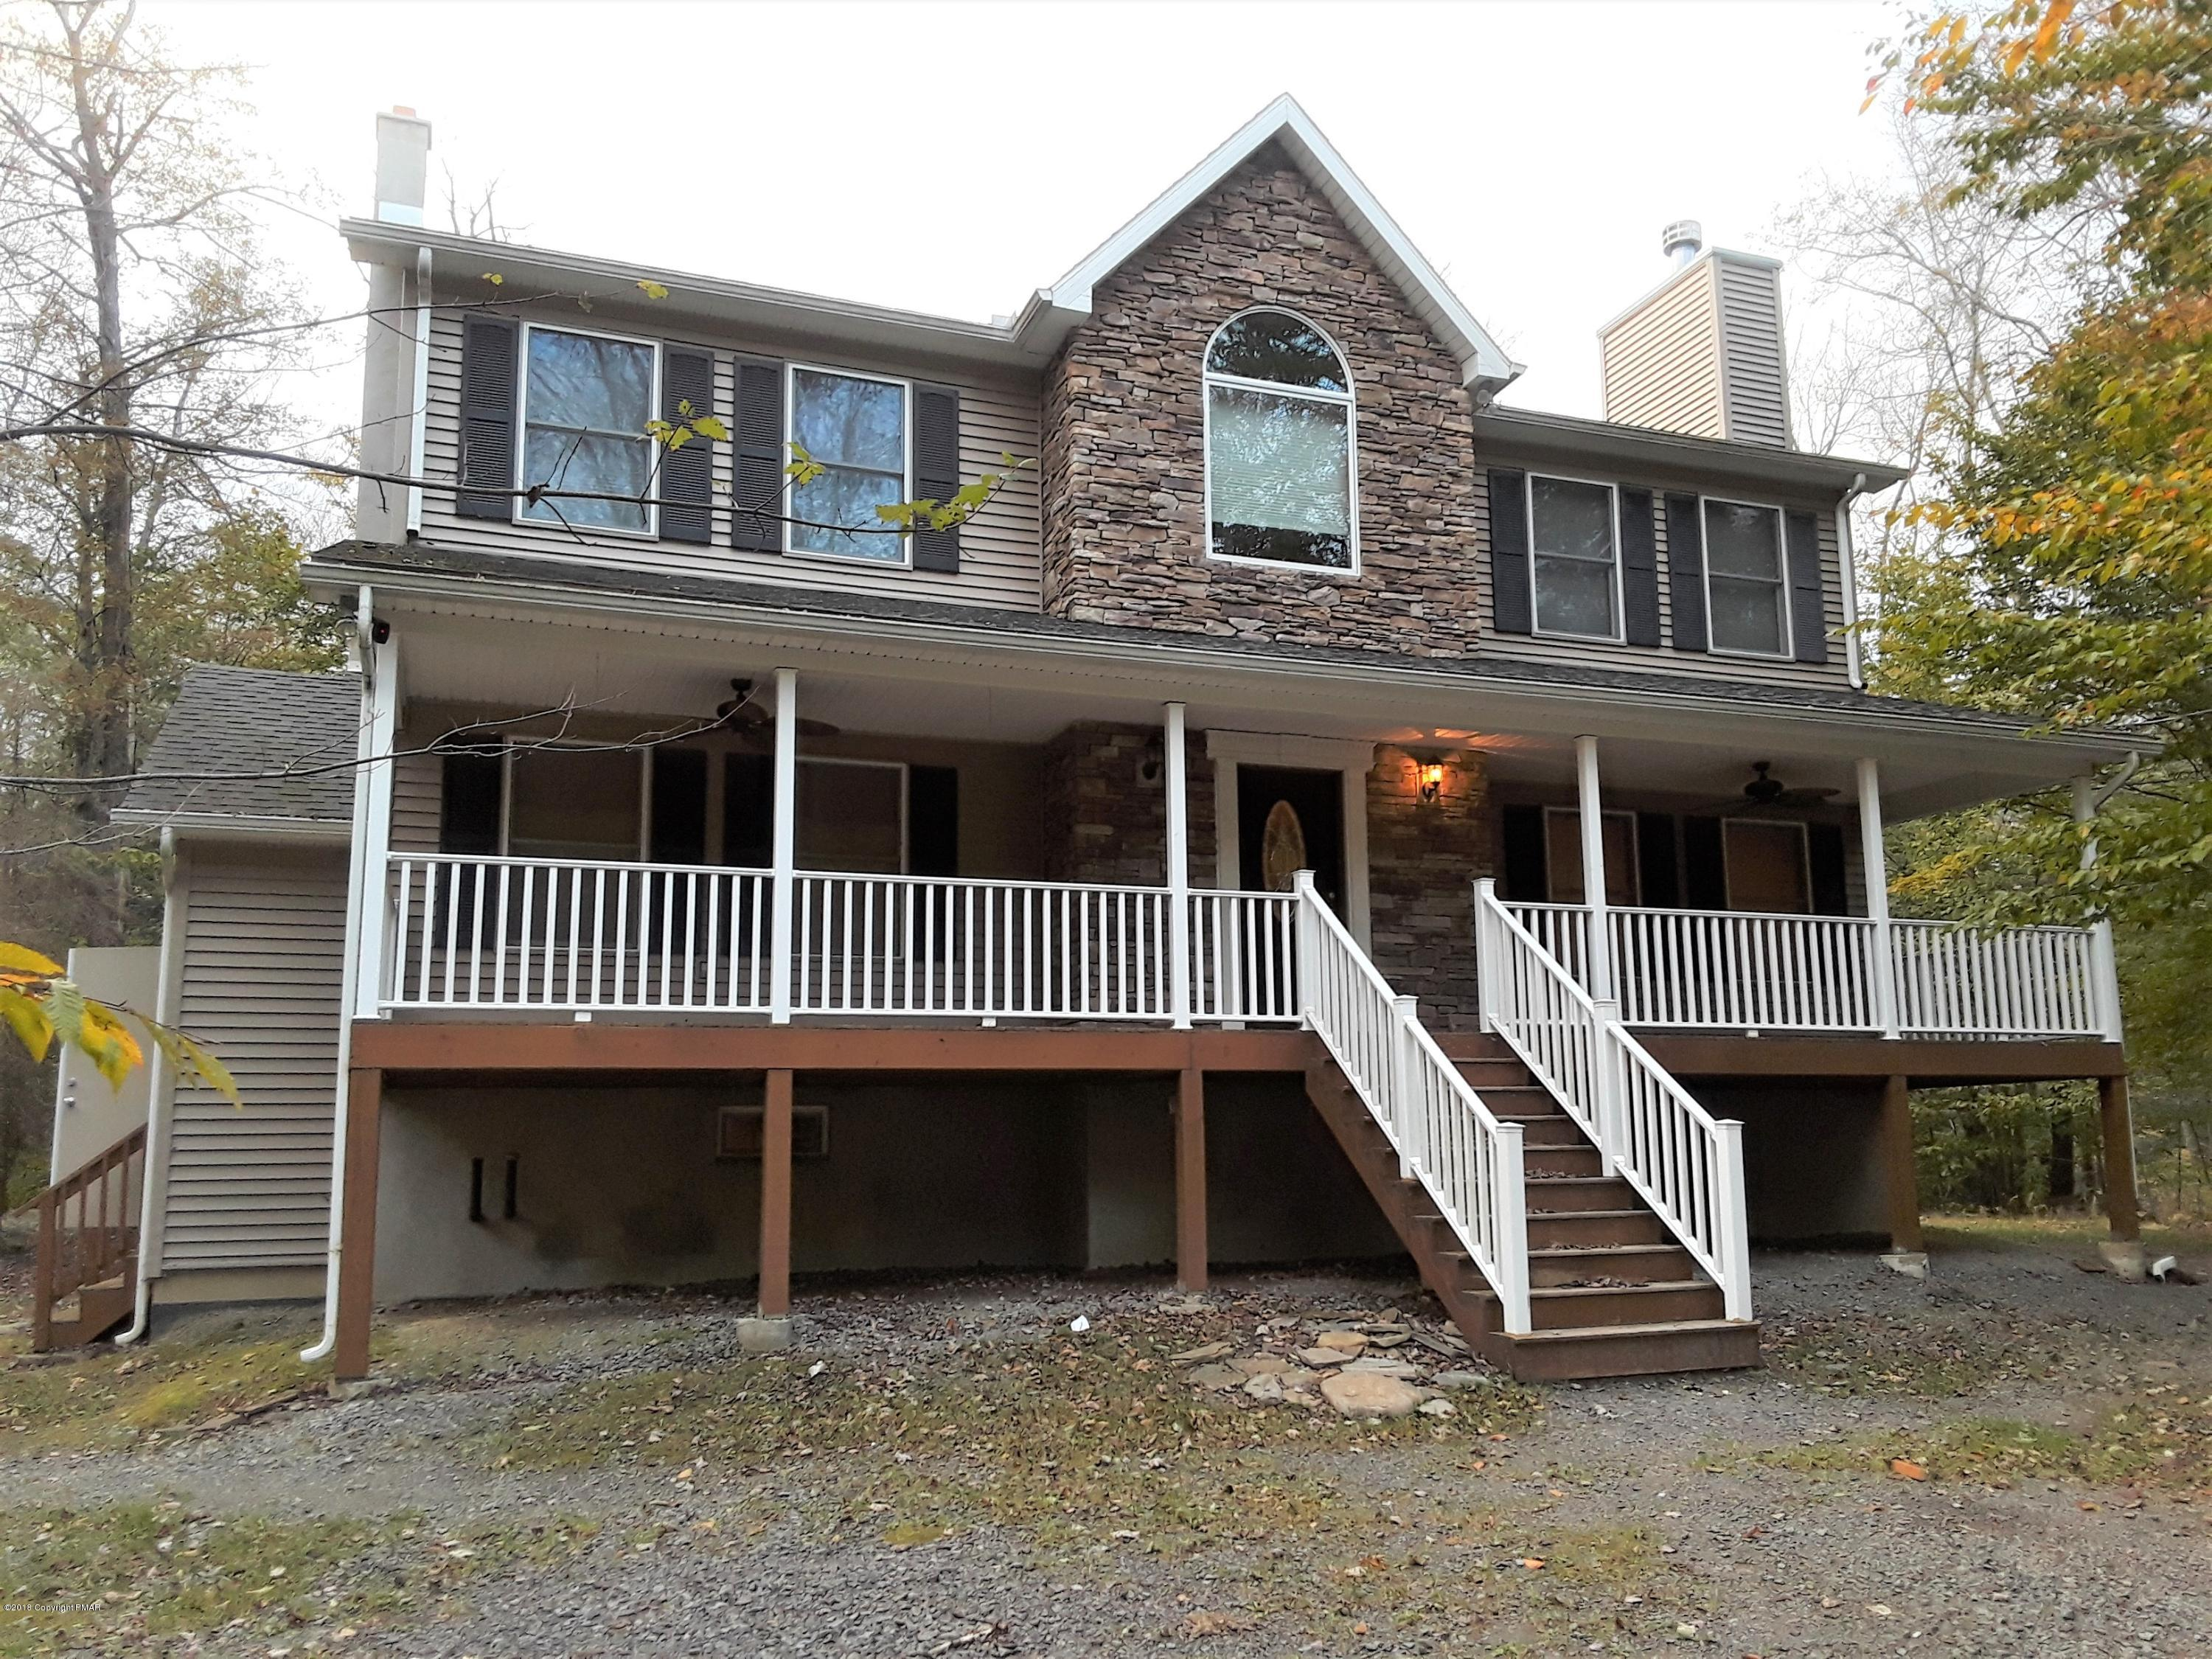 15 (aka 1122) East Creek View Dr, Gouldsboro, PA 18424